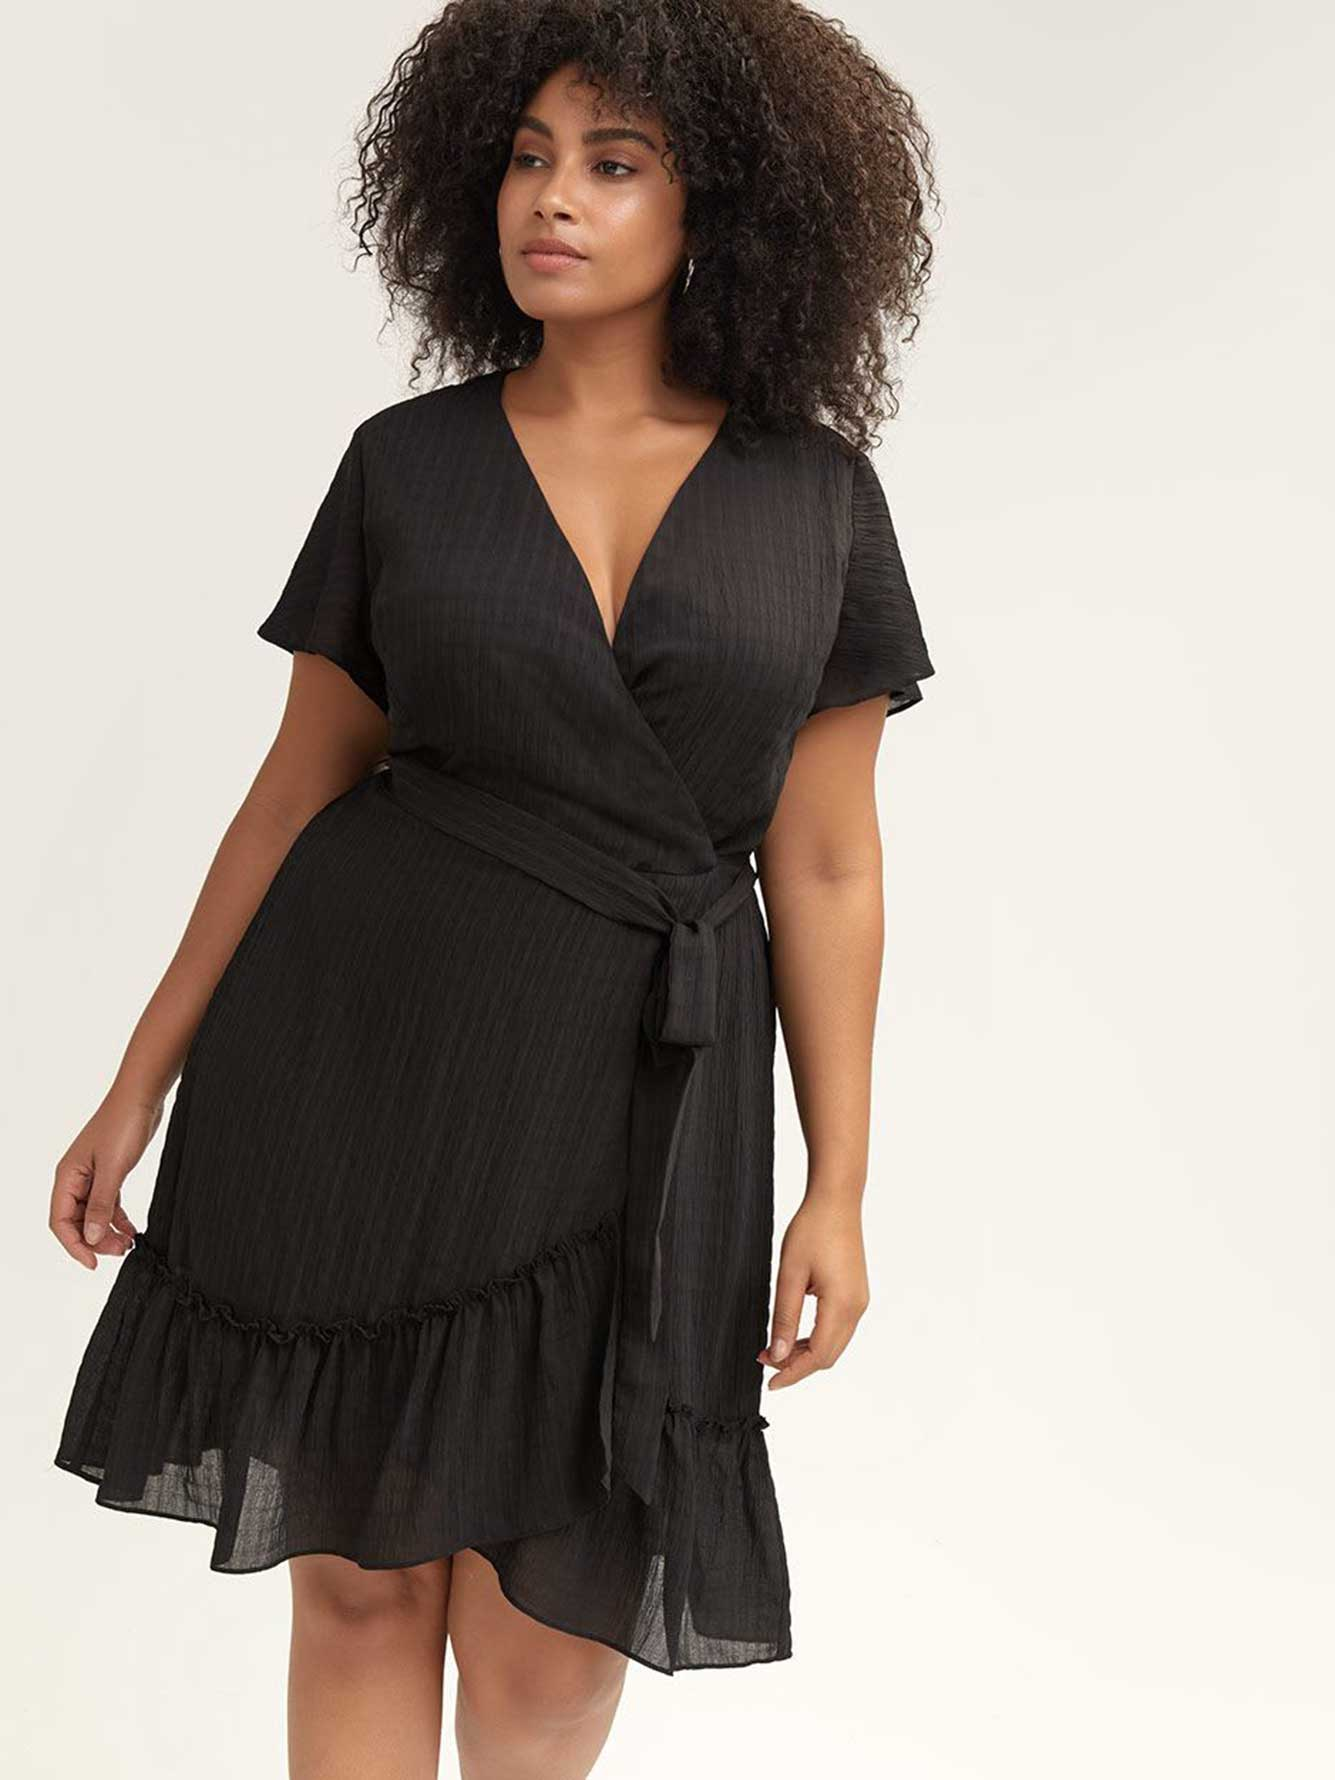 Black Wrap Dress - City Chic